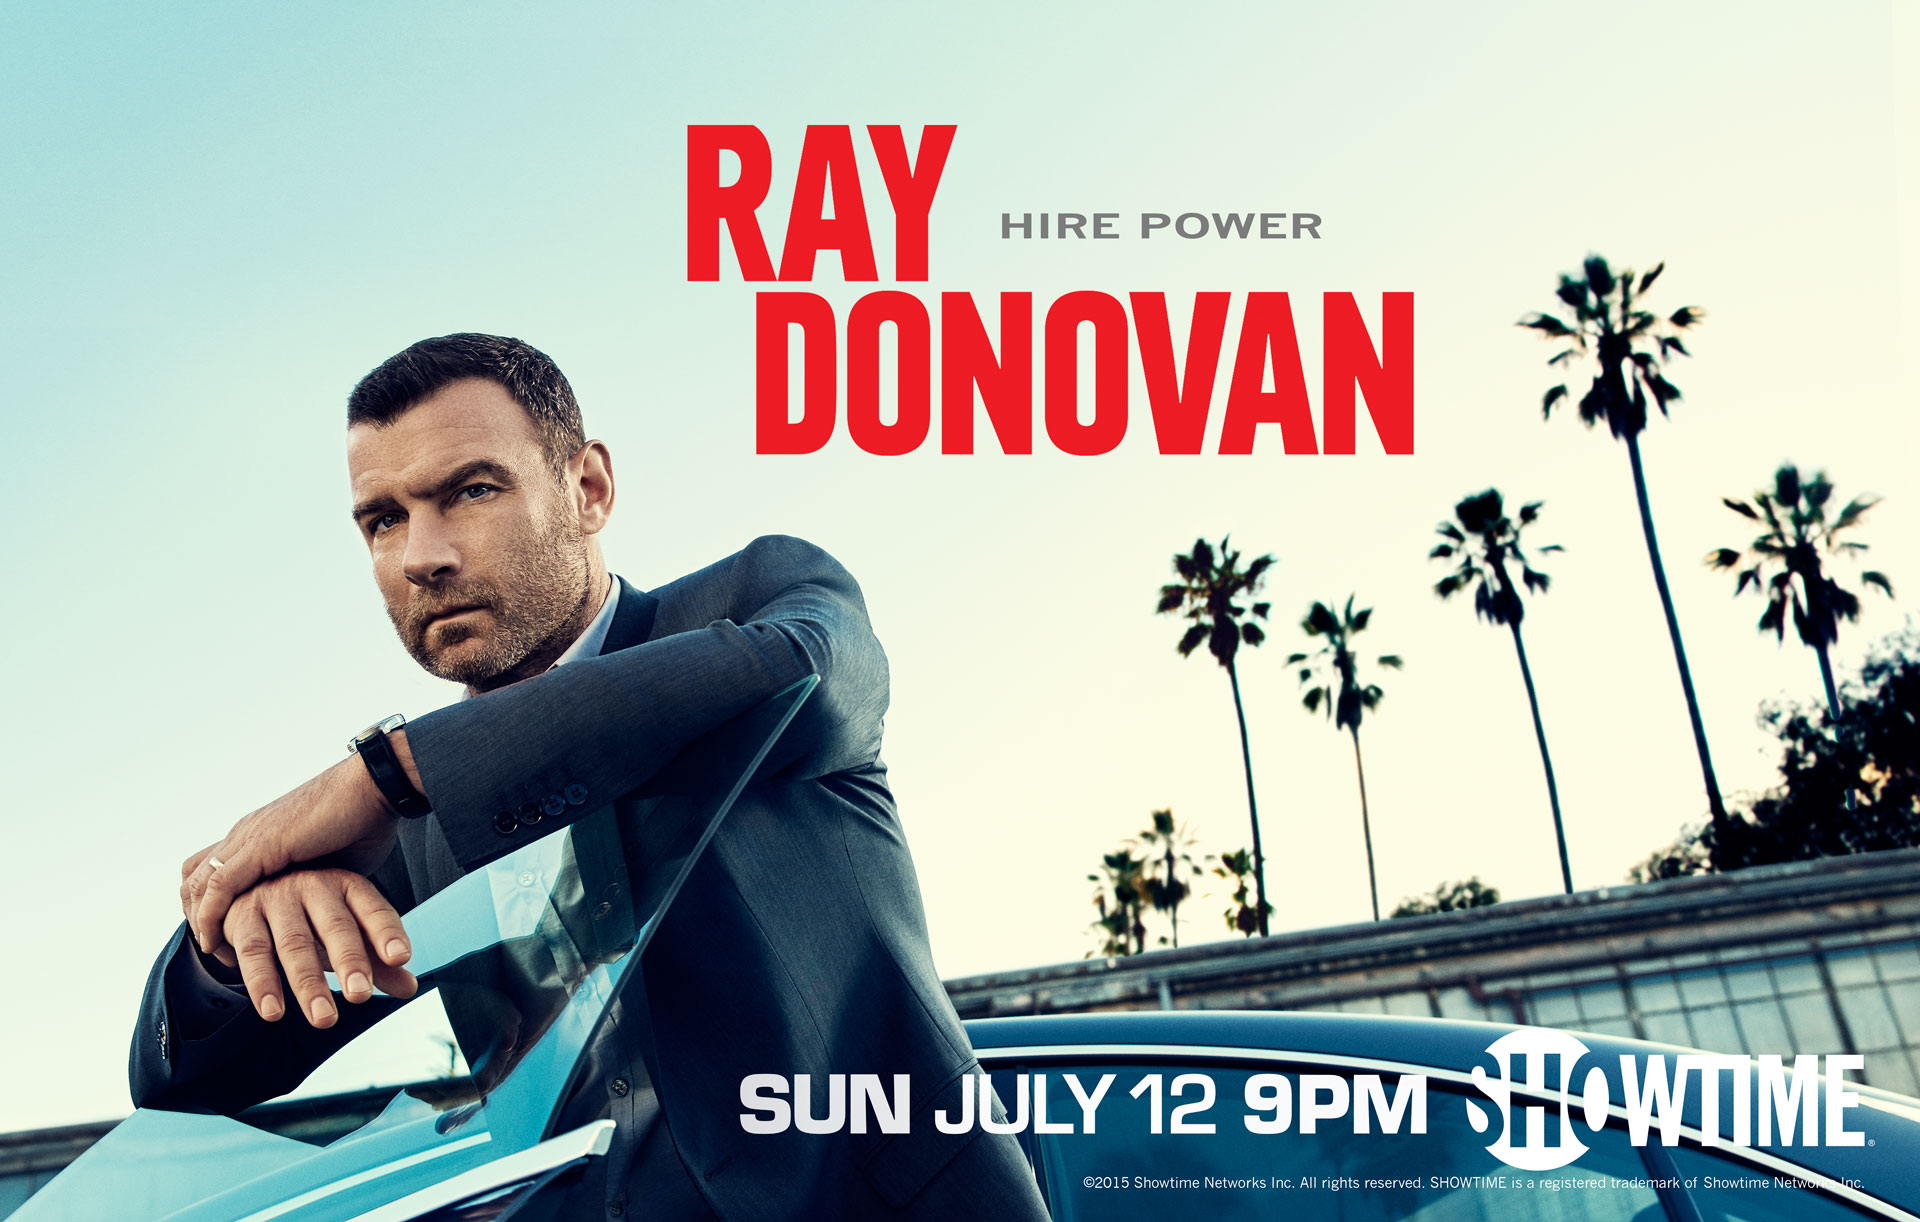 20150305_STEVENLIPPMAN_SHOWTIME_RAY_DONOVAN_04